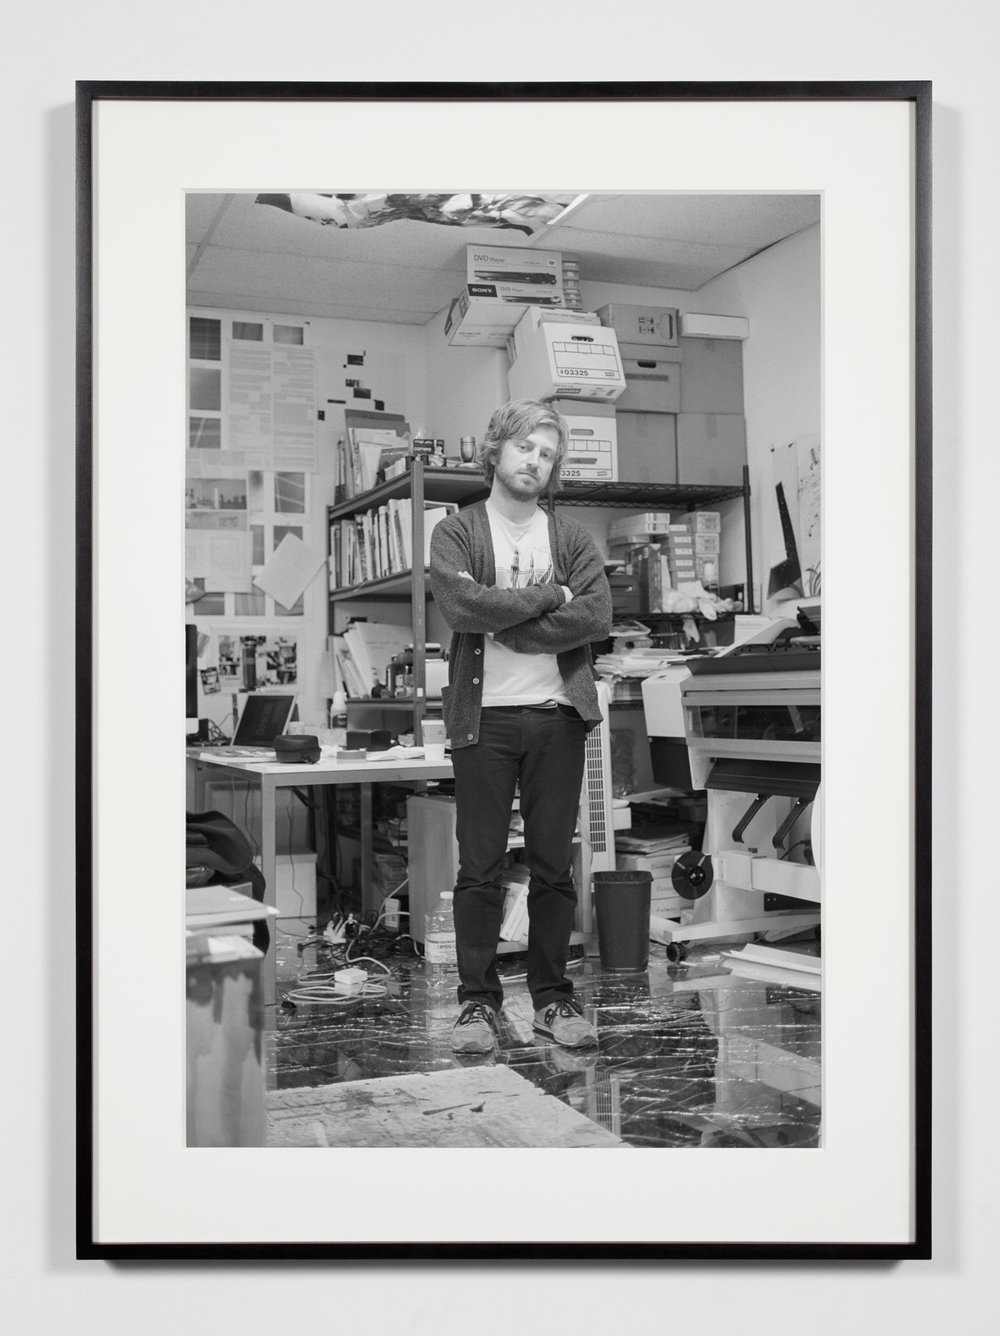 Studio Production Manager, Los Angeles, California, December 9, 2010   2011  Epson Ultrachrome K3 archival ink jet print on Hahnemühle Photo Rag paper  36 3/8 x 26 3/8 inches   Industrial Portraits, 2008–    A Diagram of Forces, 2011